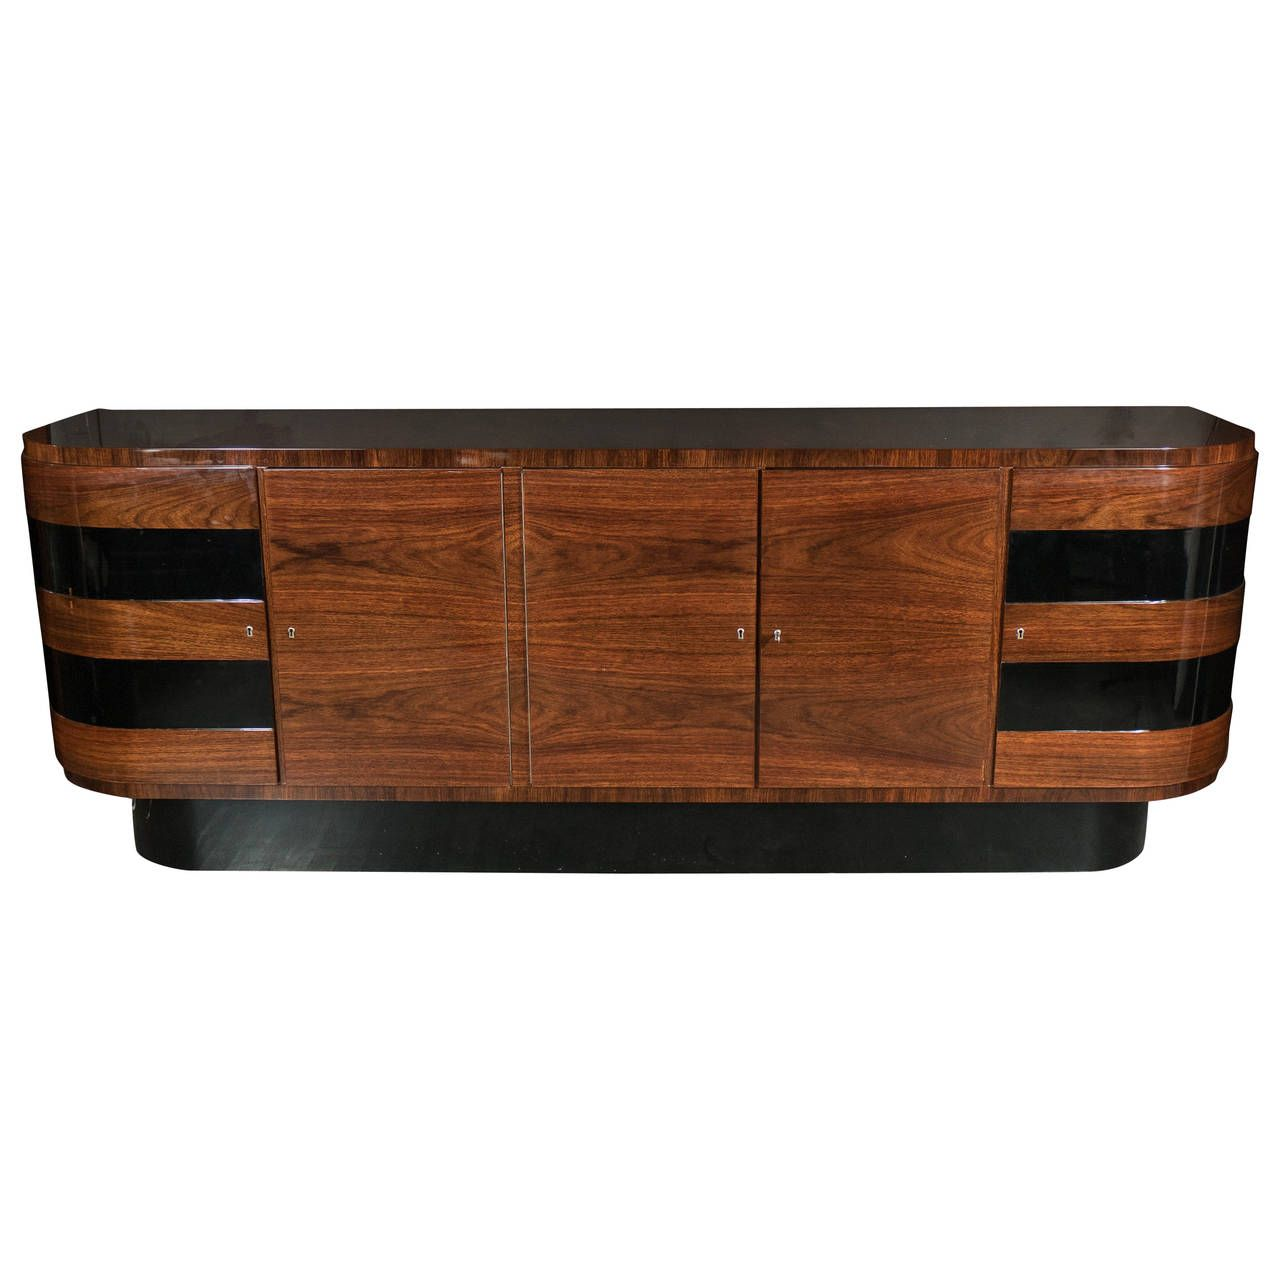 Art deco sideboard by deutsche mobel in bookmatched for Vintage mobel sideboard